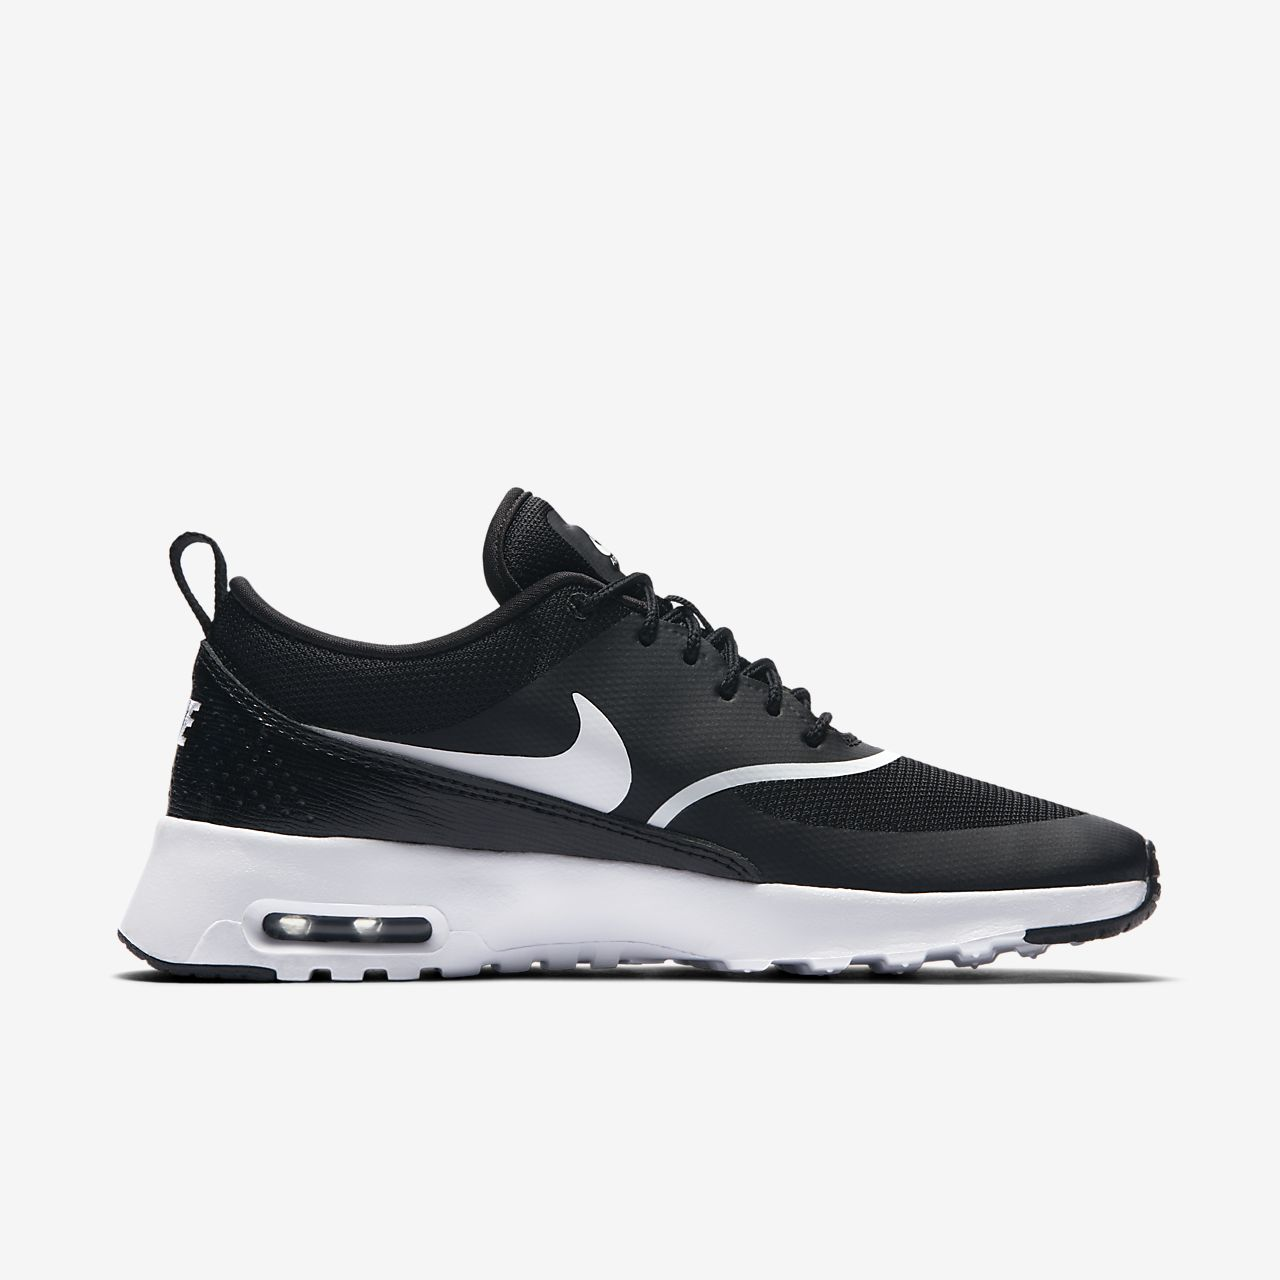 new products 72d86 afc52 Women s Shoe. Nike Air Max Thea